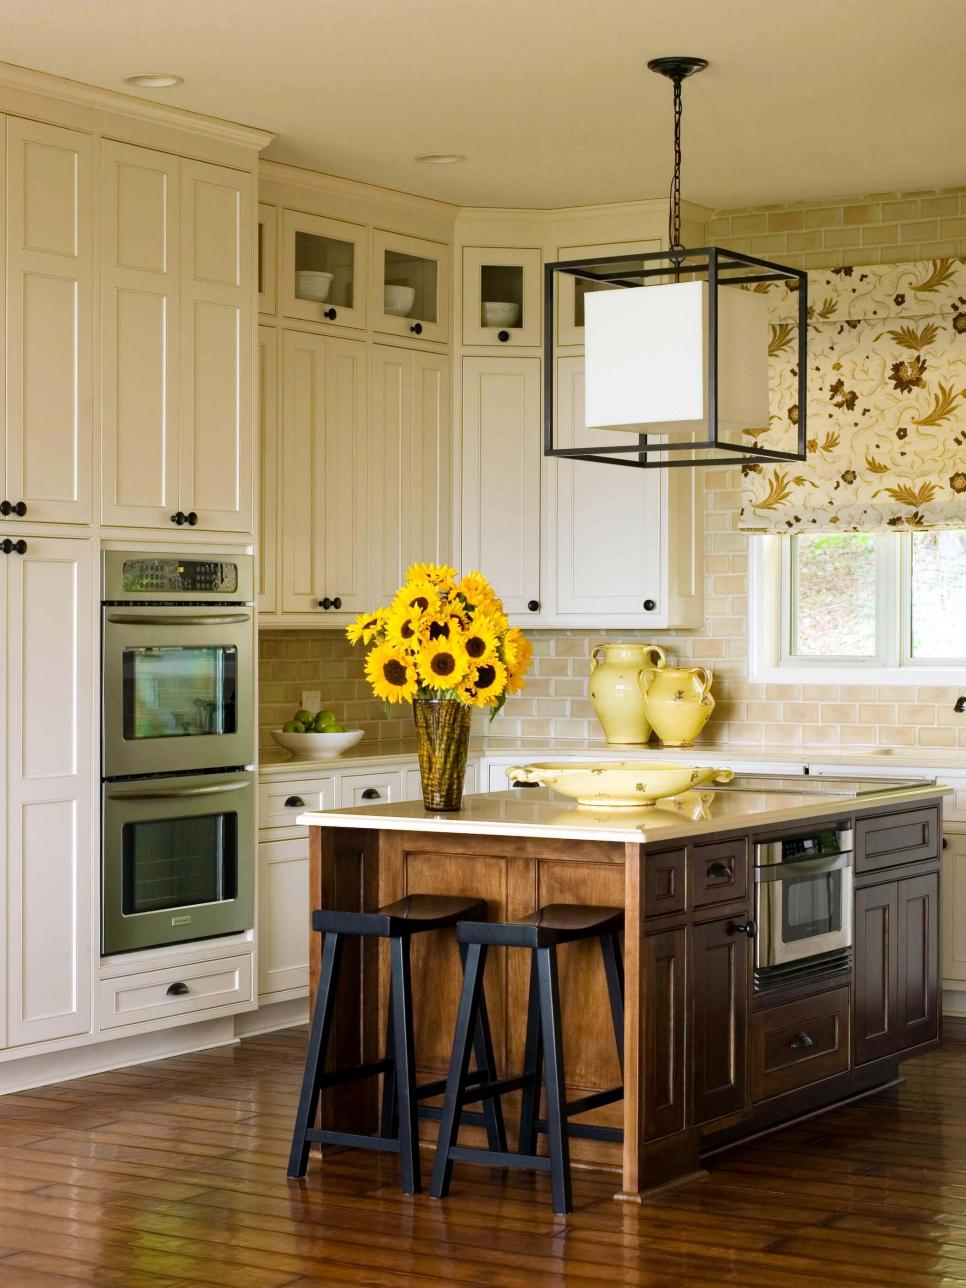 Popular refinishing kitchen cabinets kitchen cabinets: should you replace or reface?   hgtv ykwrayq